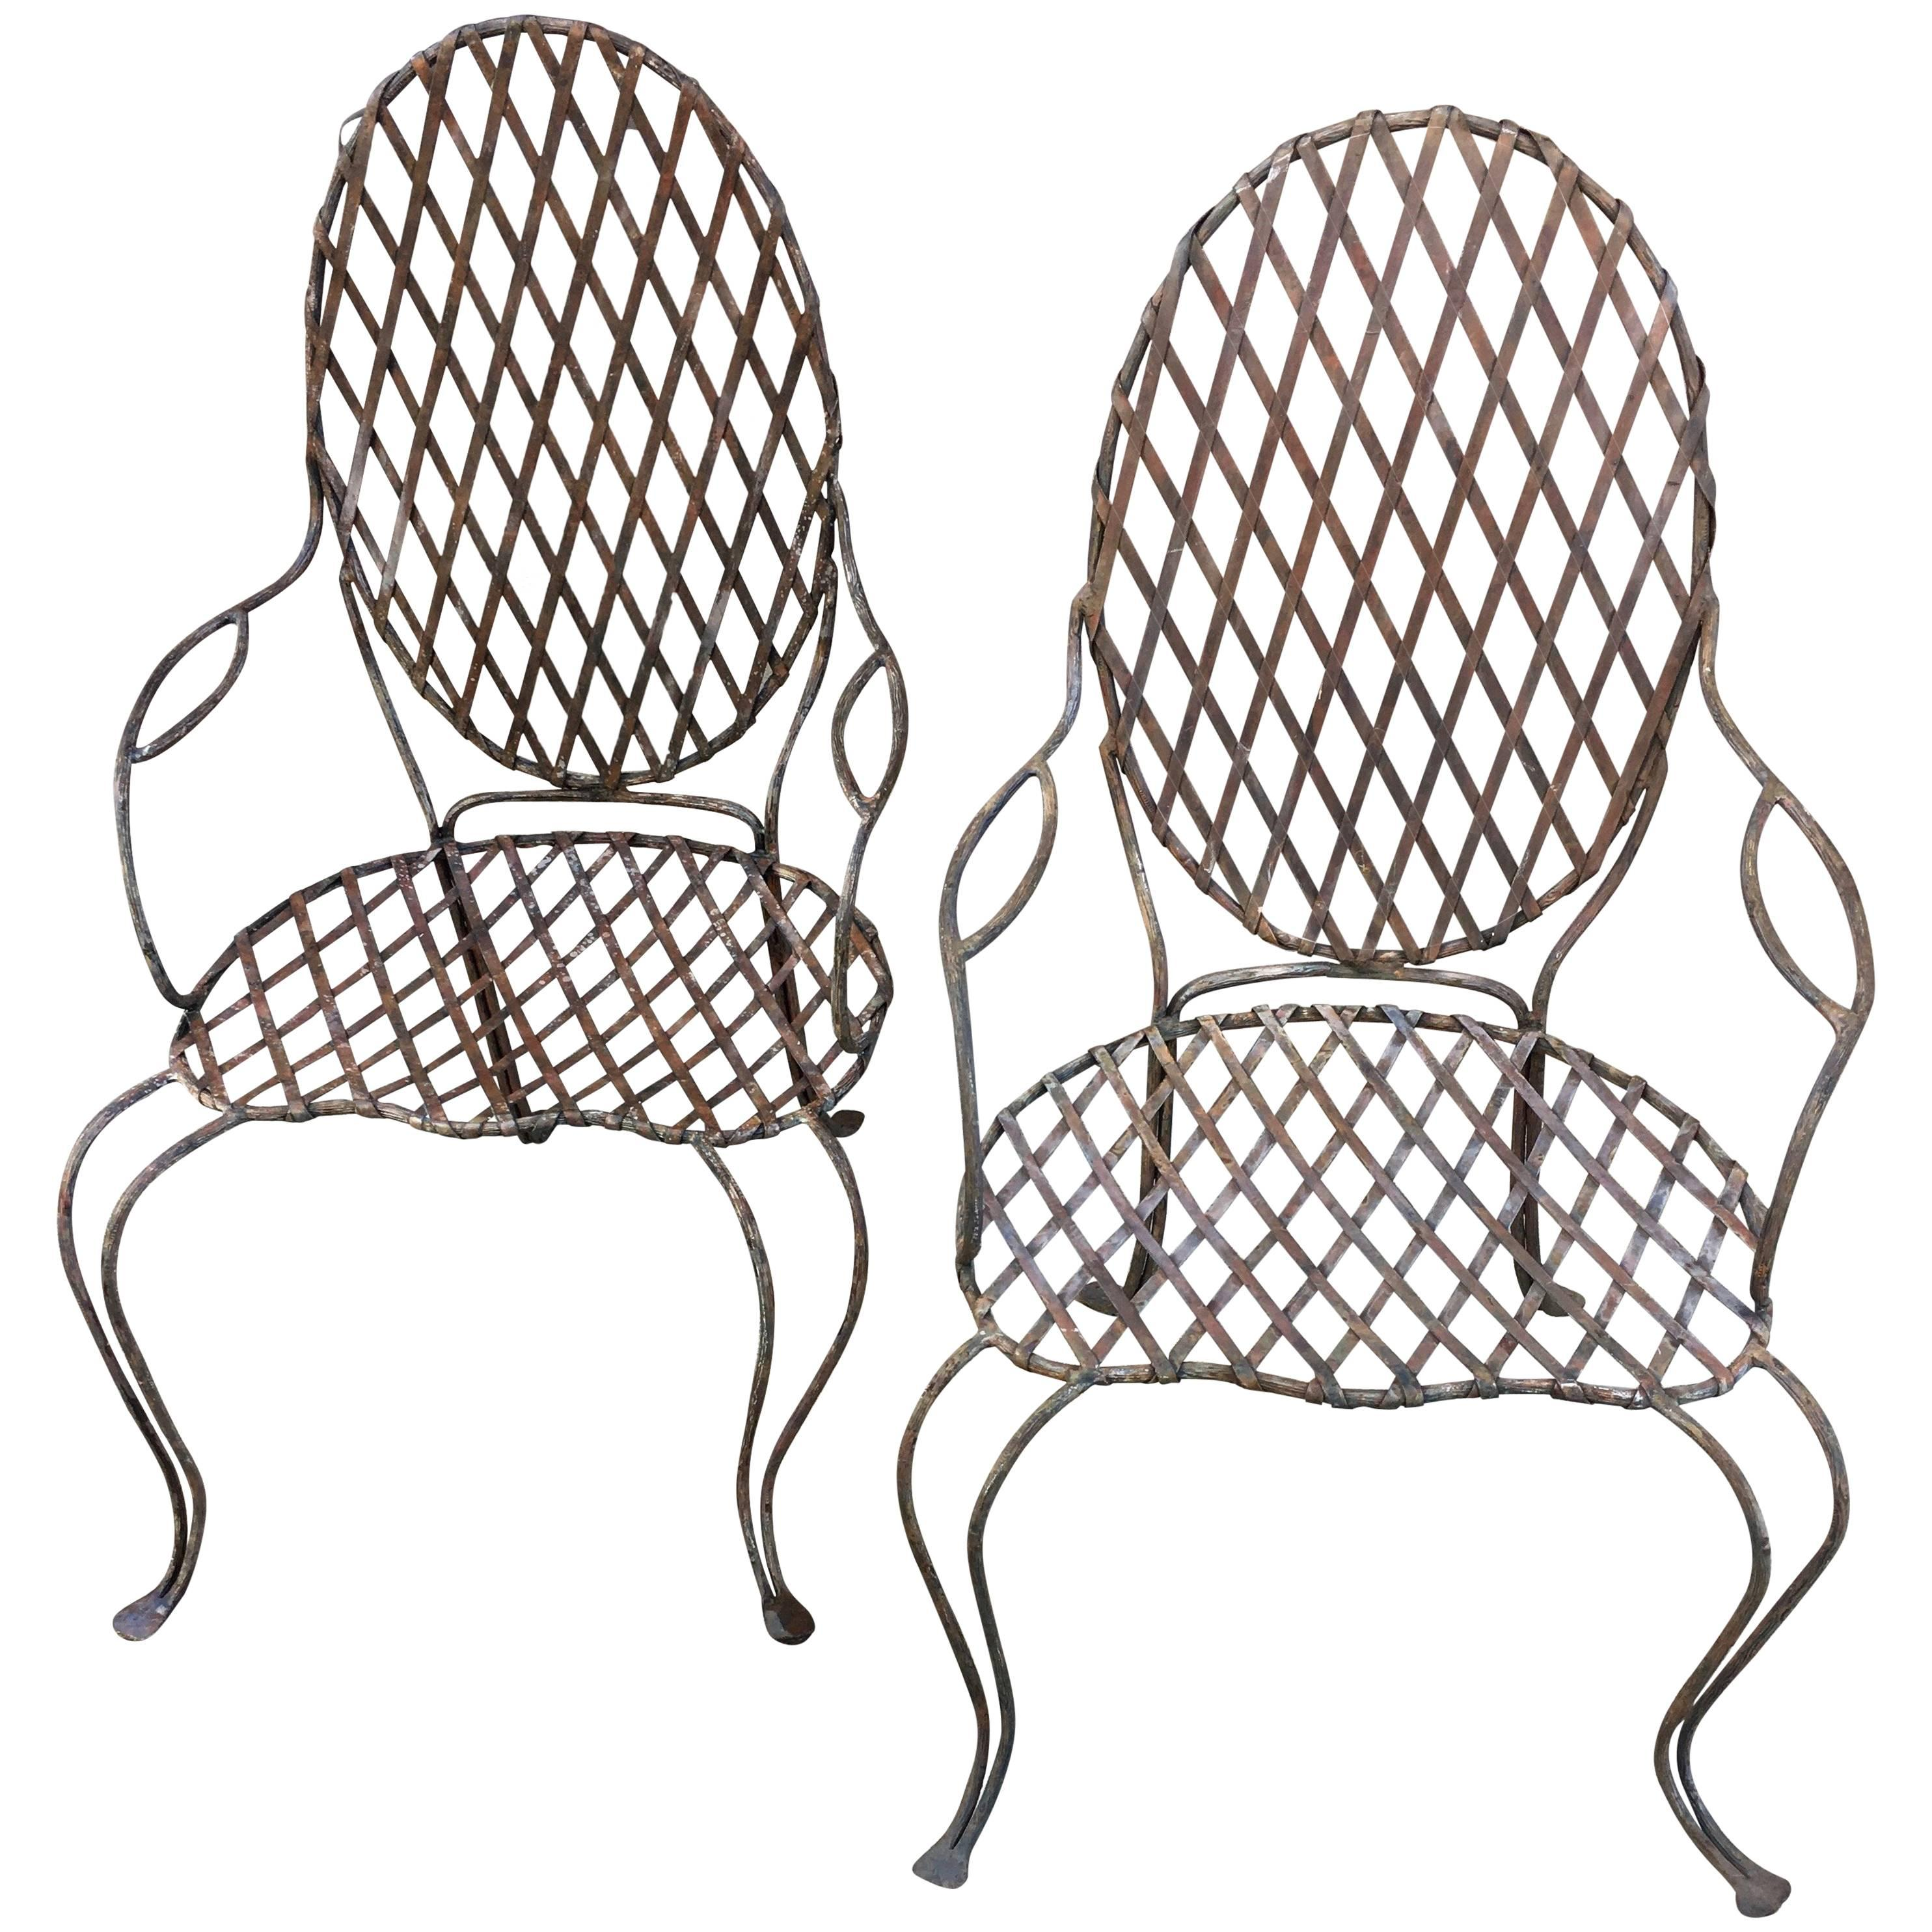 Pair Of Twig Iron Outdoor Chairs By Rose Tarlow Melrose House For Sale